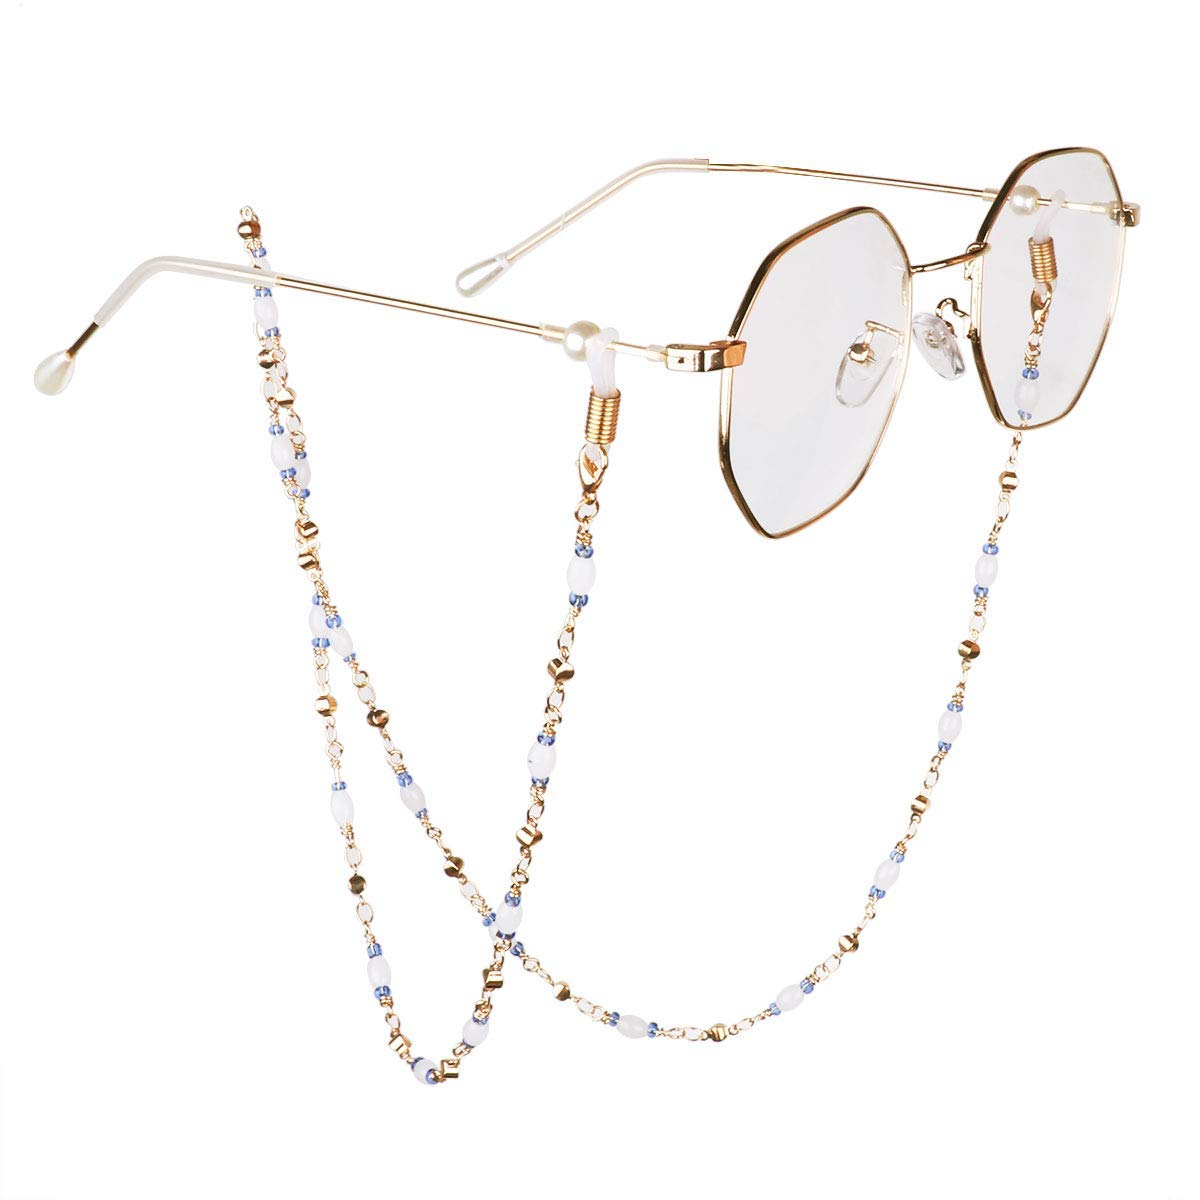 8d324b70c2a Get Quotations · YiZYiF Eyeglass Chain Fashion Beaded Gold Sunglasses  Necklace Strap Holder Non-slip Reading Glasses Cords